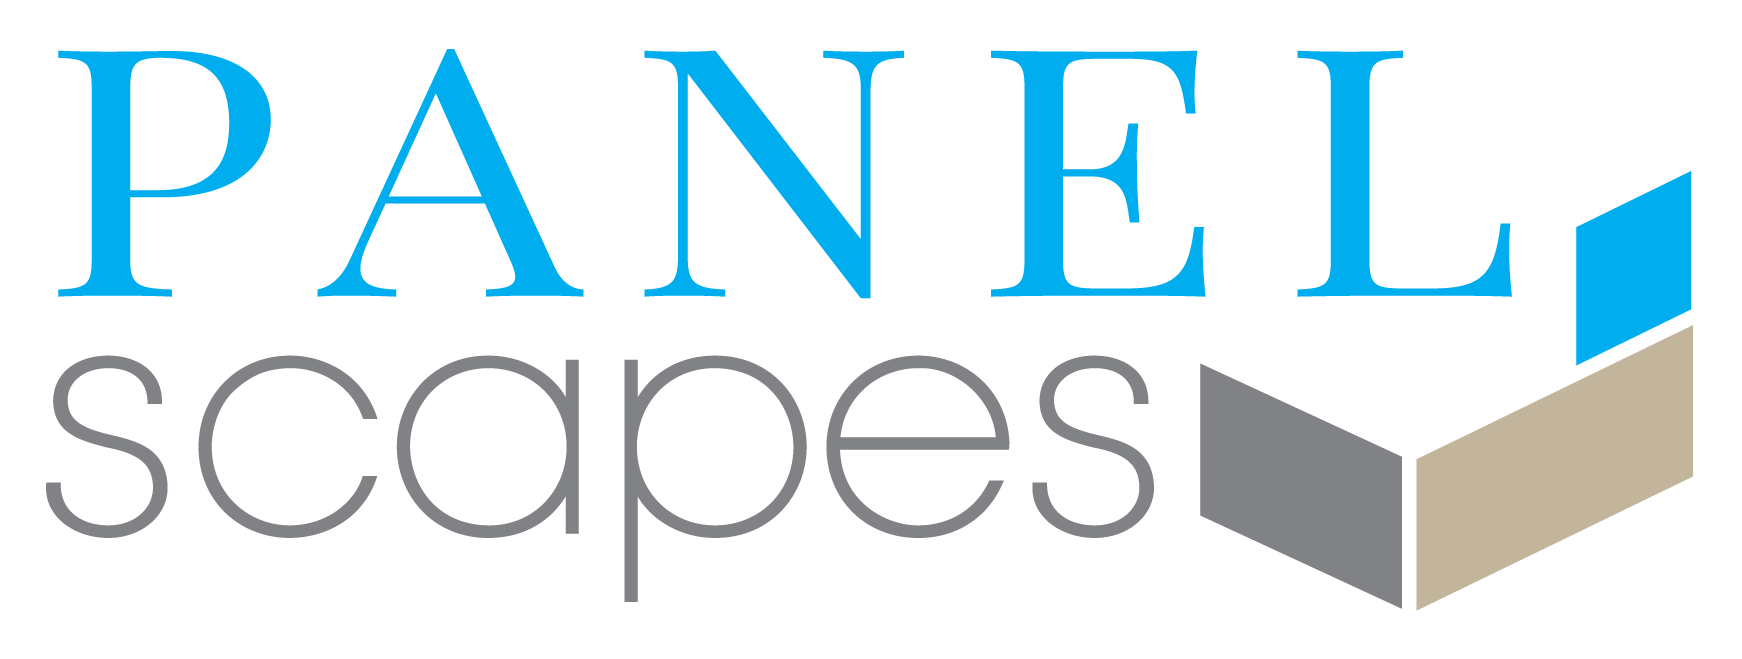 Panel Scapes, LLC